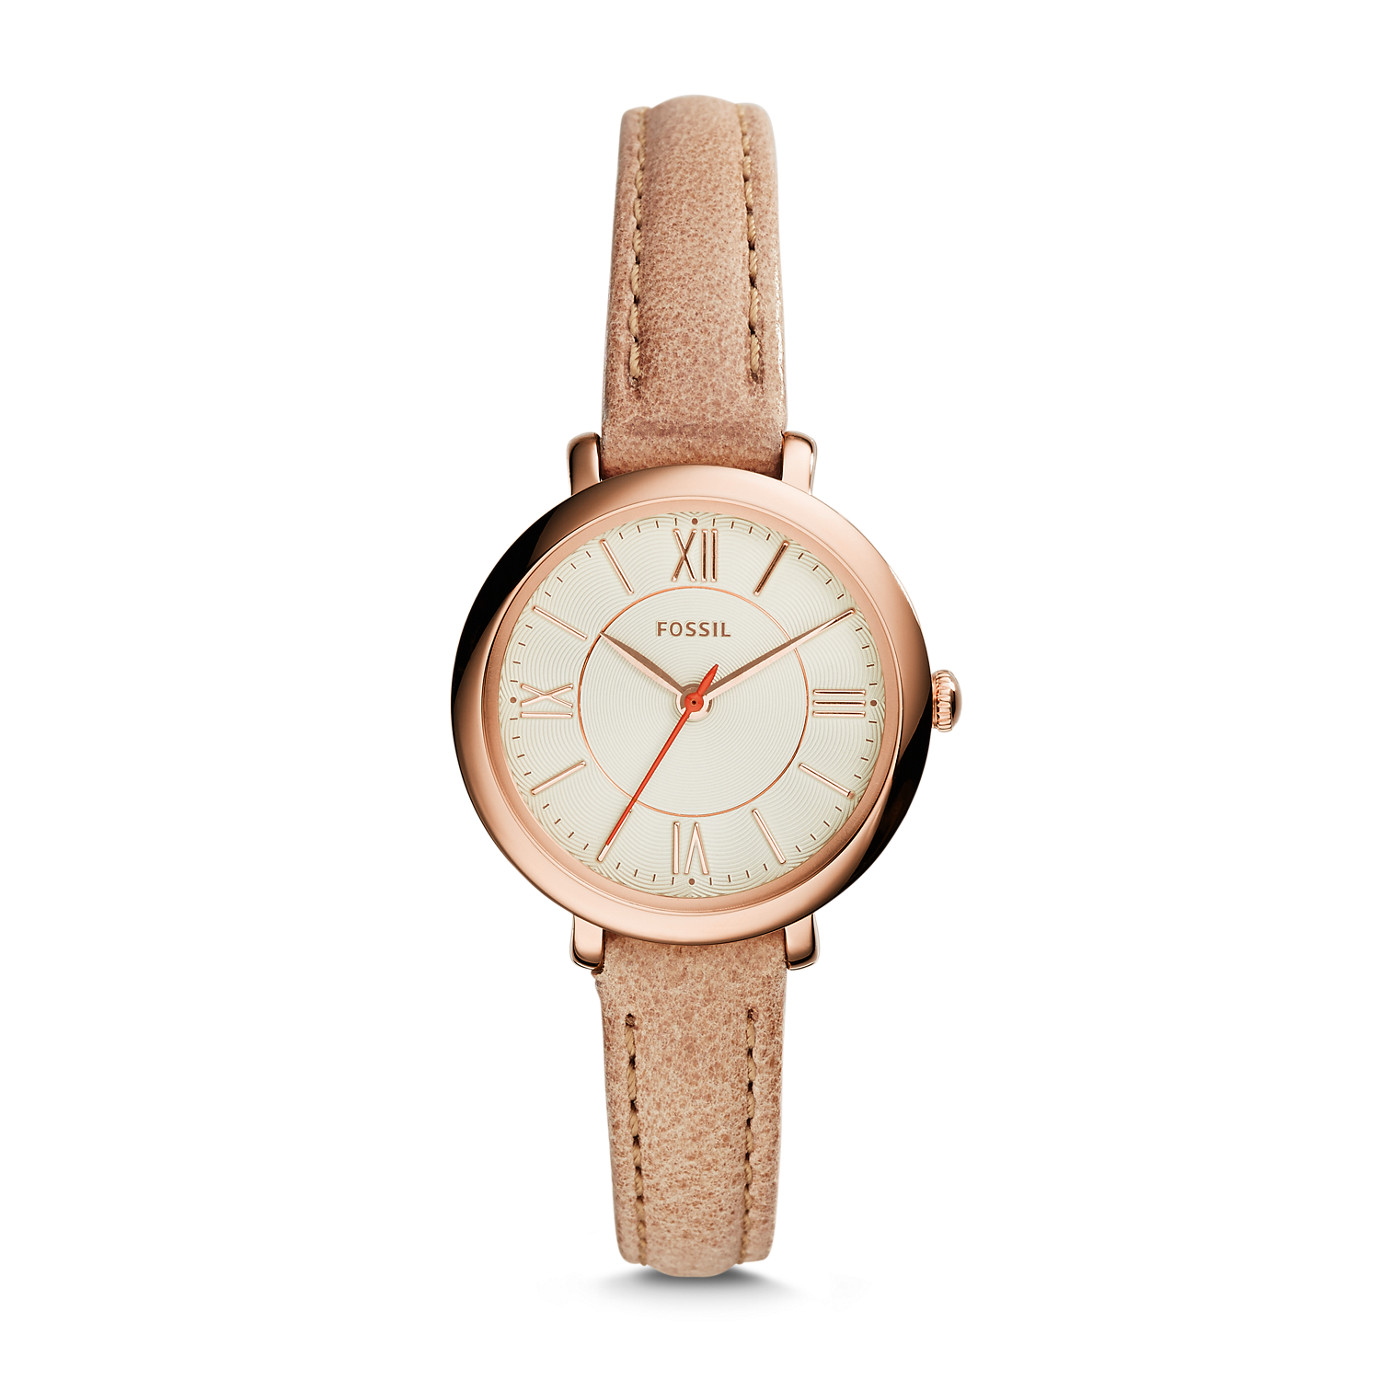 Jacqueline Small Three-Hand Leather Watch – Sand